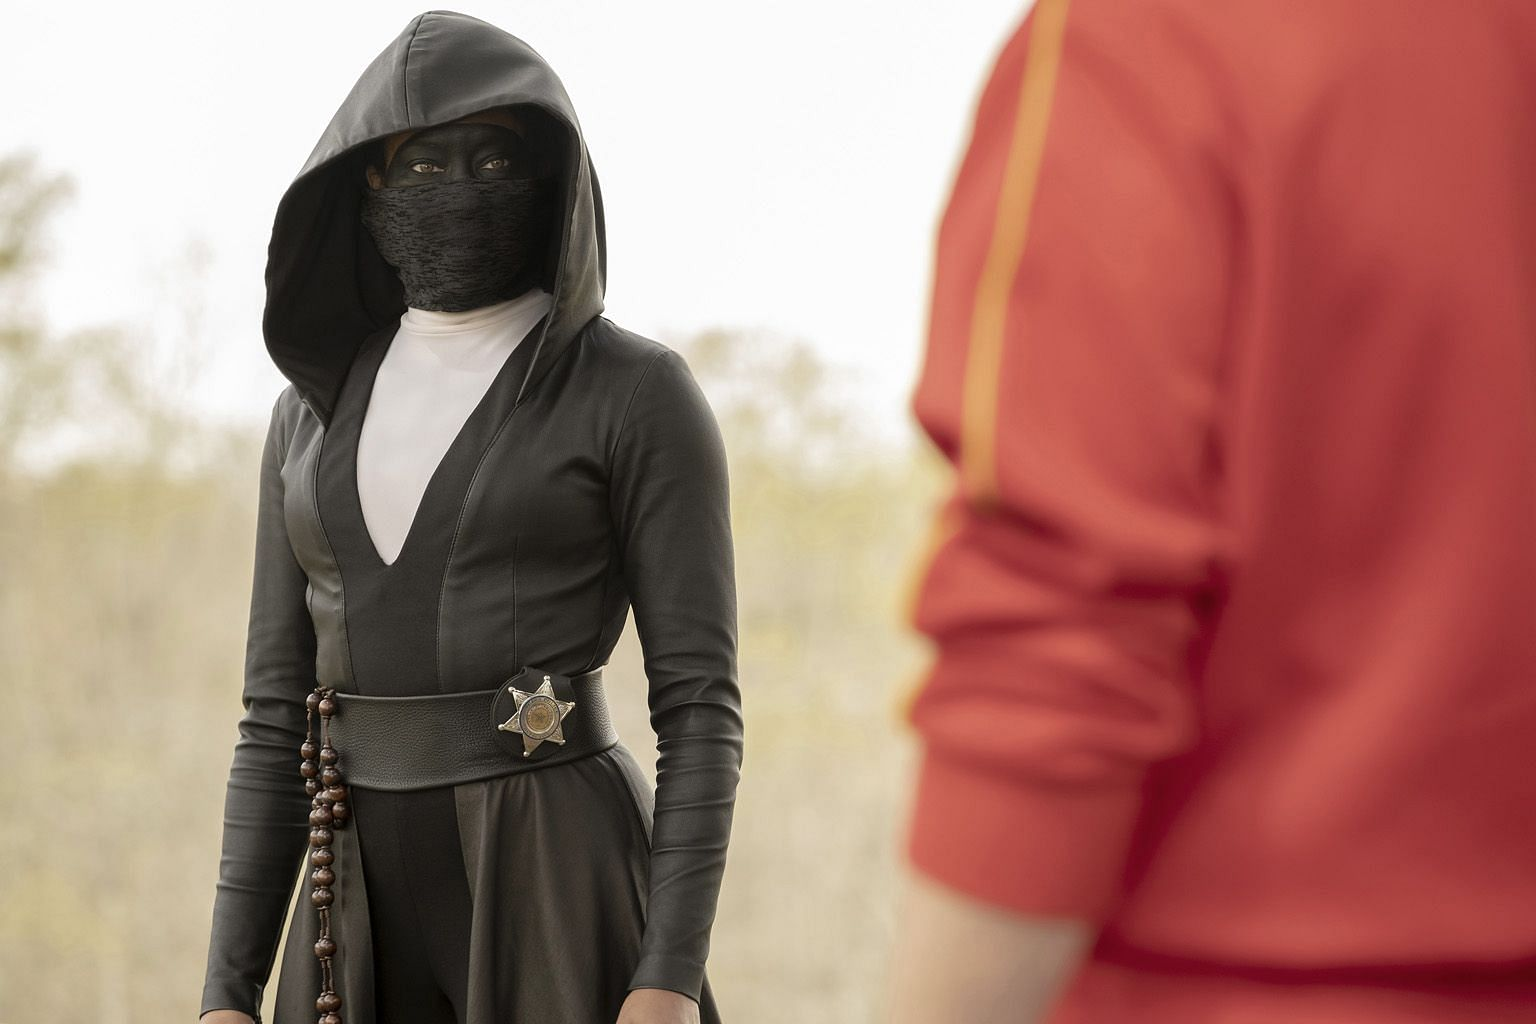 Outstanding Limited Series Award winner Watchmen, starring Regina King (above), is a timely blend of superheroes and political satire that confronts racism in the United States.